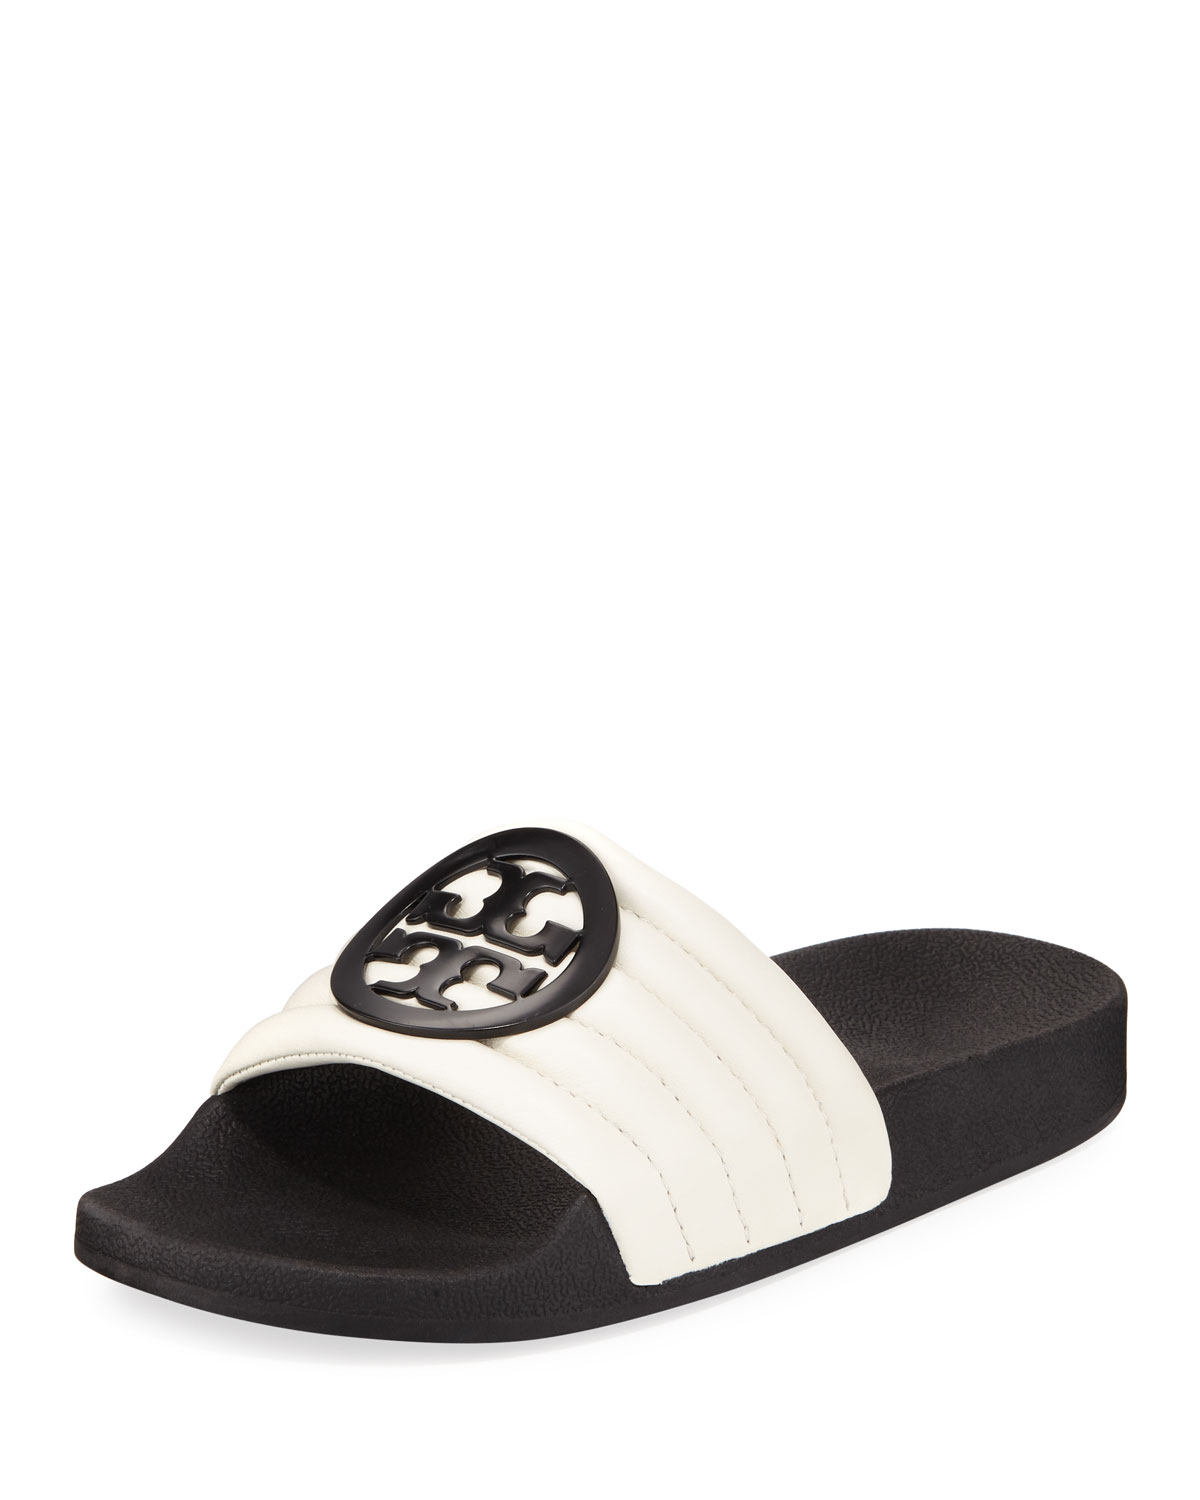 a7073a5ce713e Tory Burch Lina Two-Tone Padded Slide Sandal